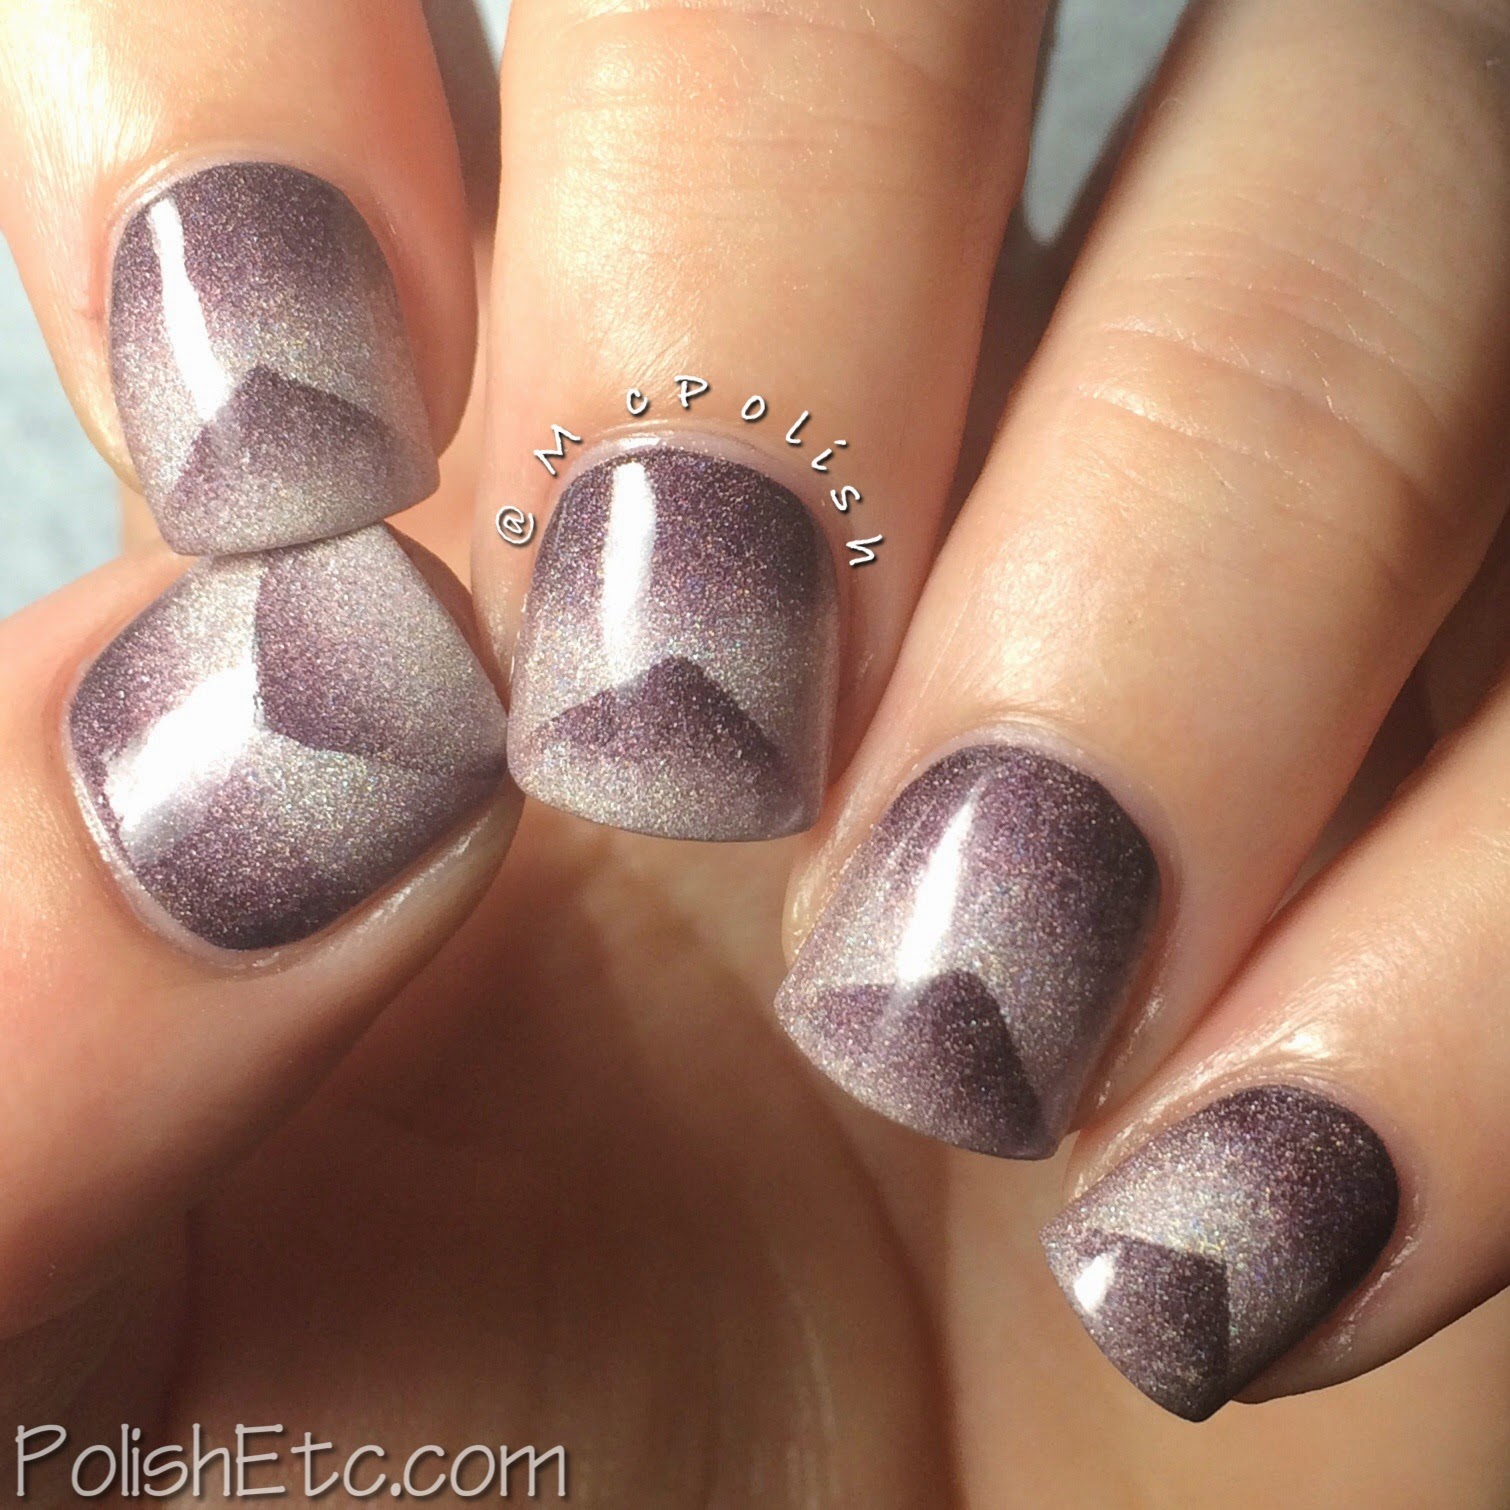 31 Day Nail Art Challenge - #31dc2014 - McPolish - GRADIENT